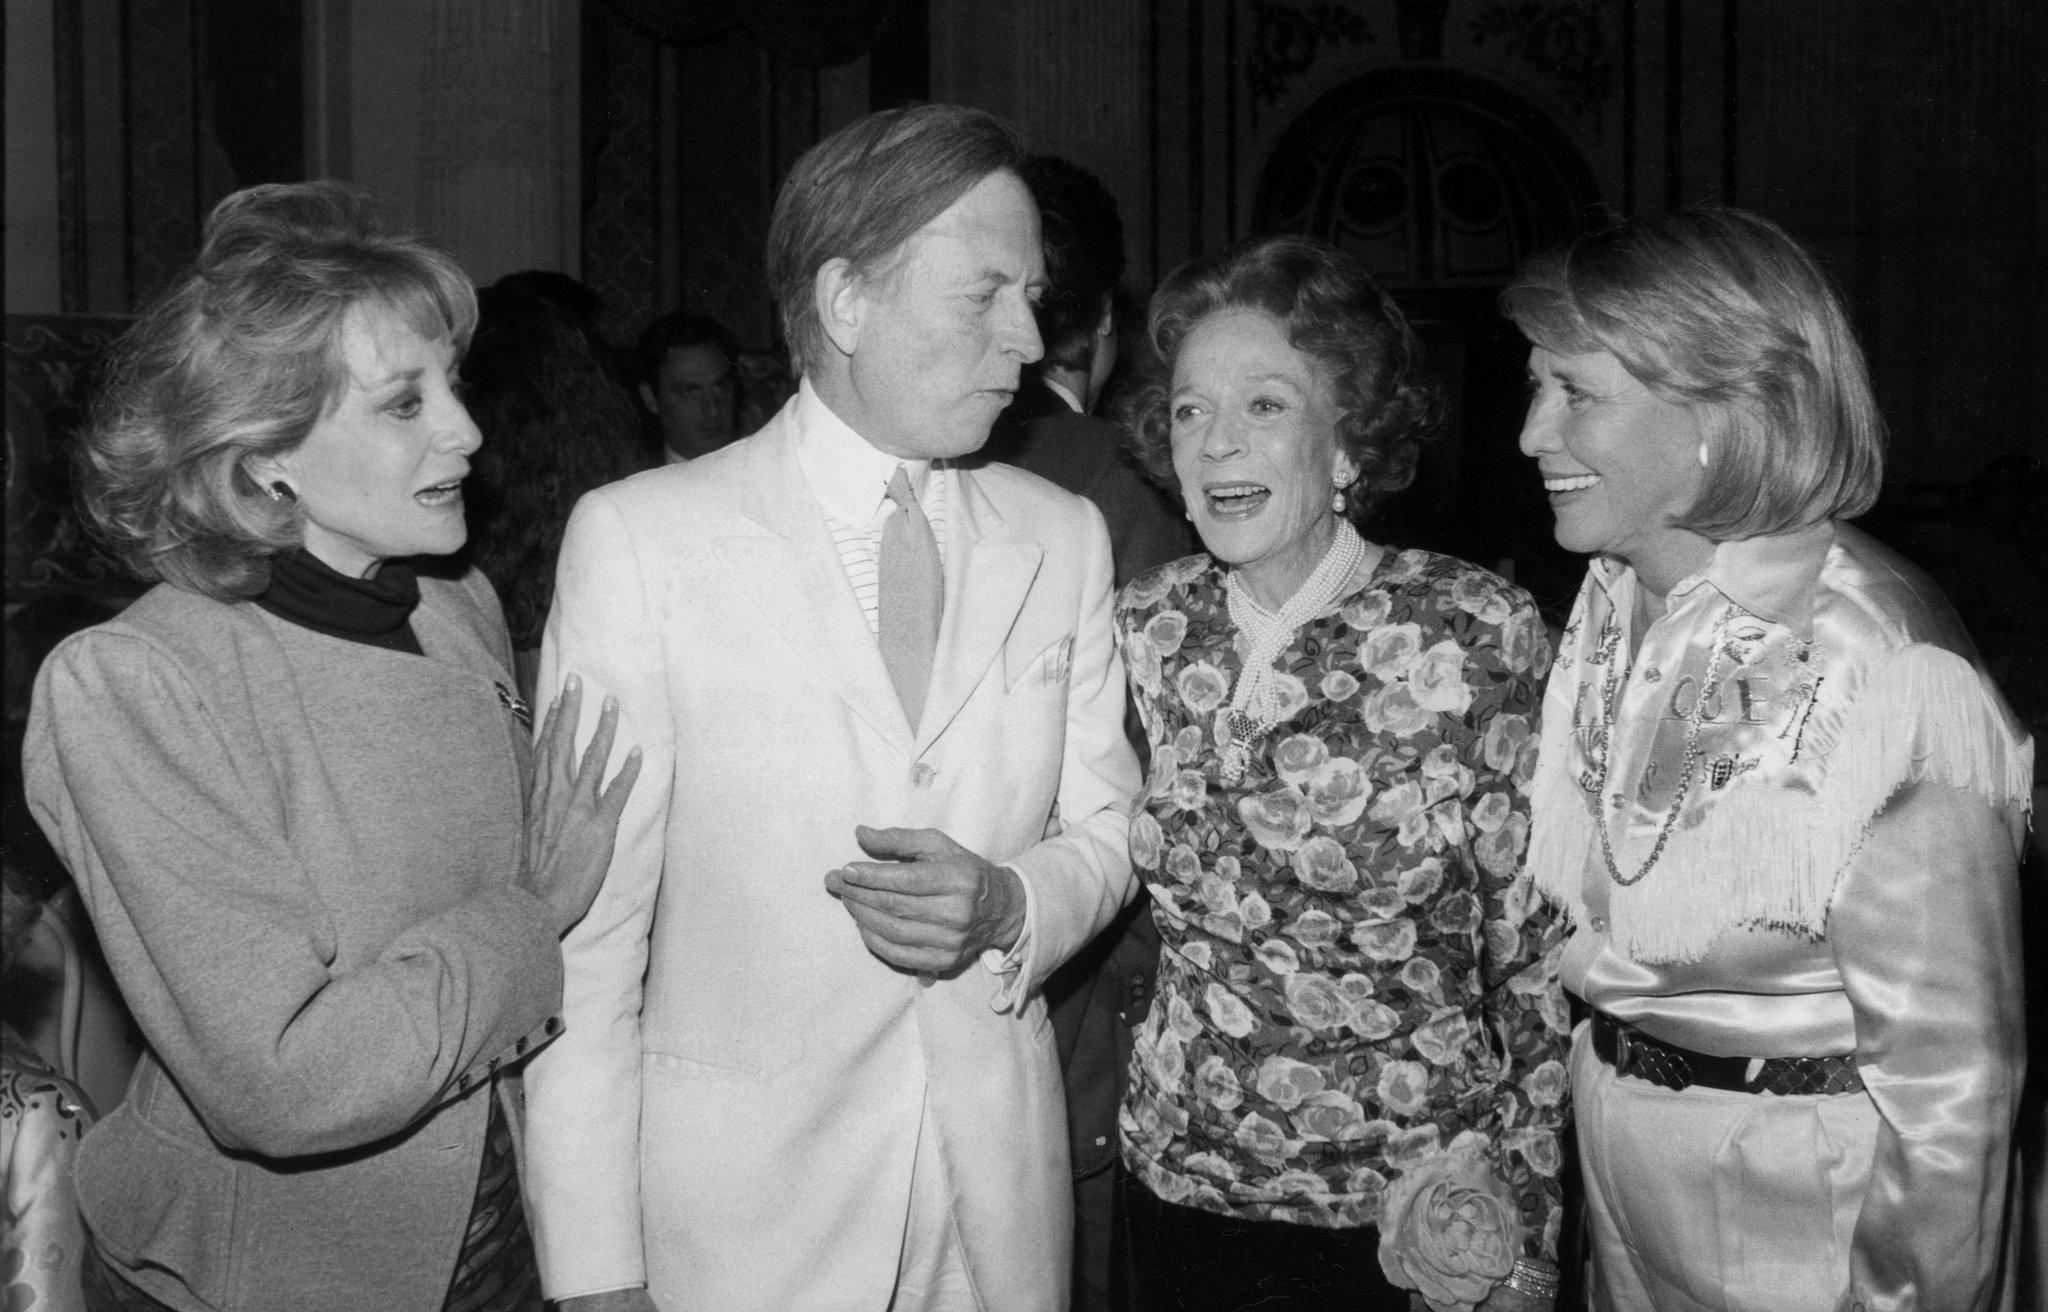 Tom Wolfe with Barbara Walters and others